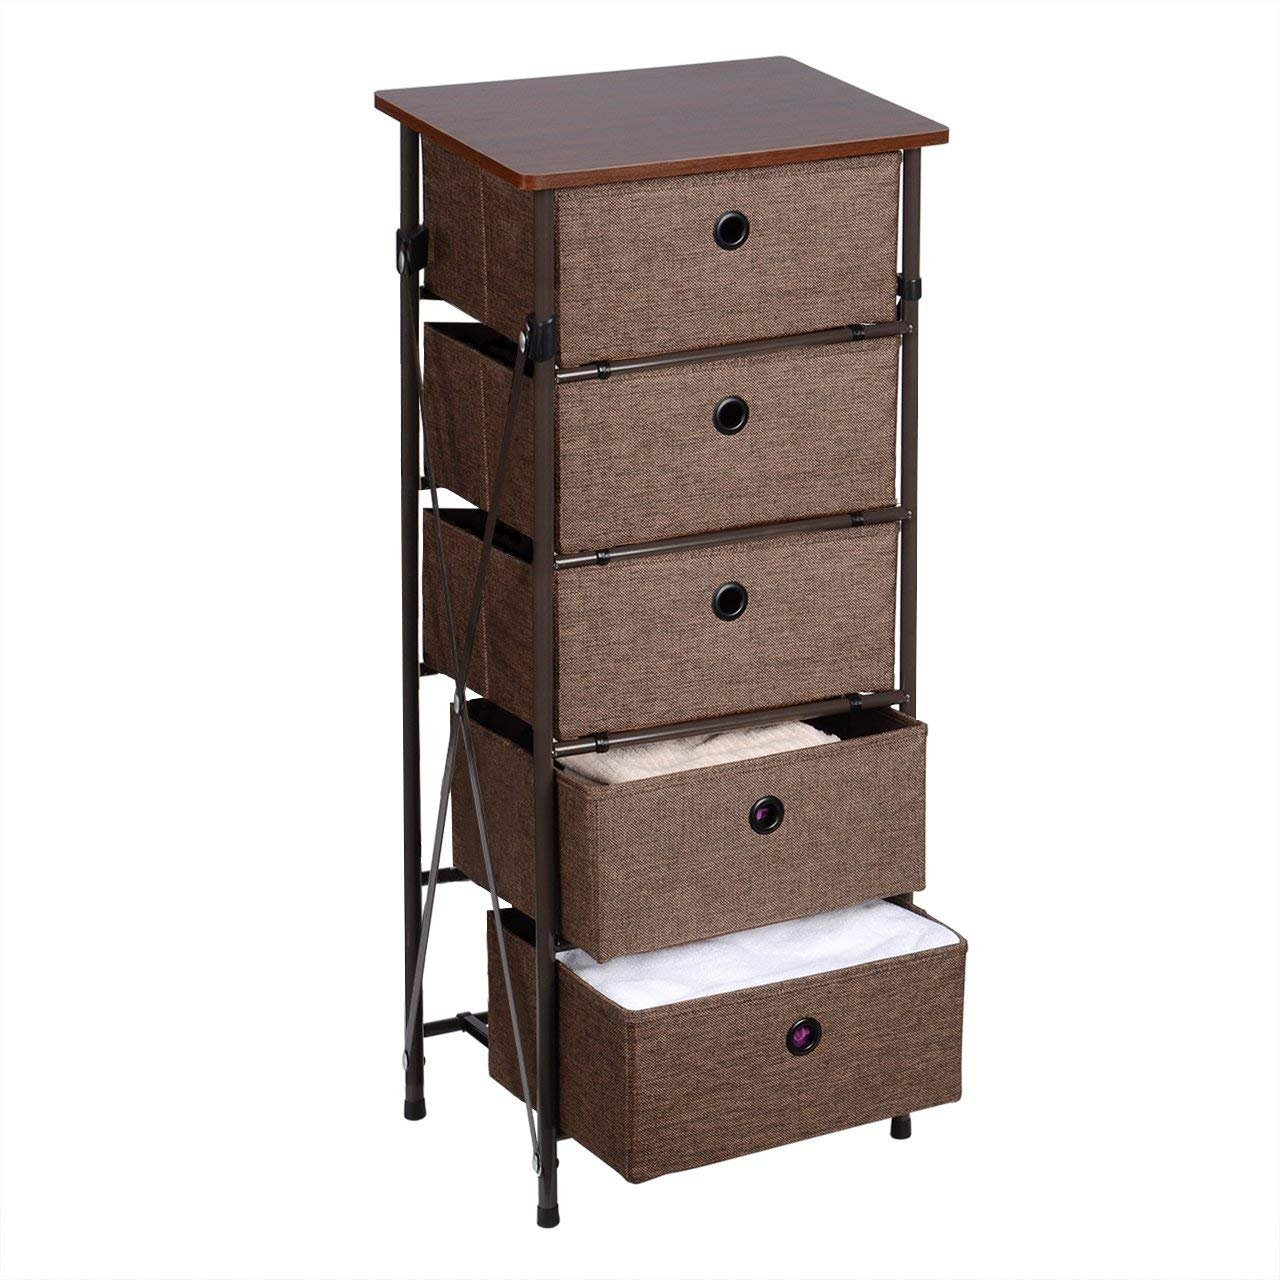 SortWise™ Brown Wooden Top Night Stand Framed by Iron Shelf with 4 Removeable Storage Drawers